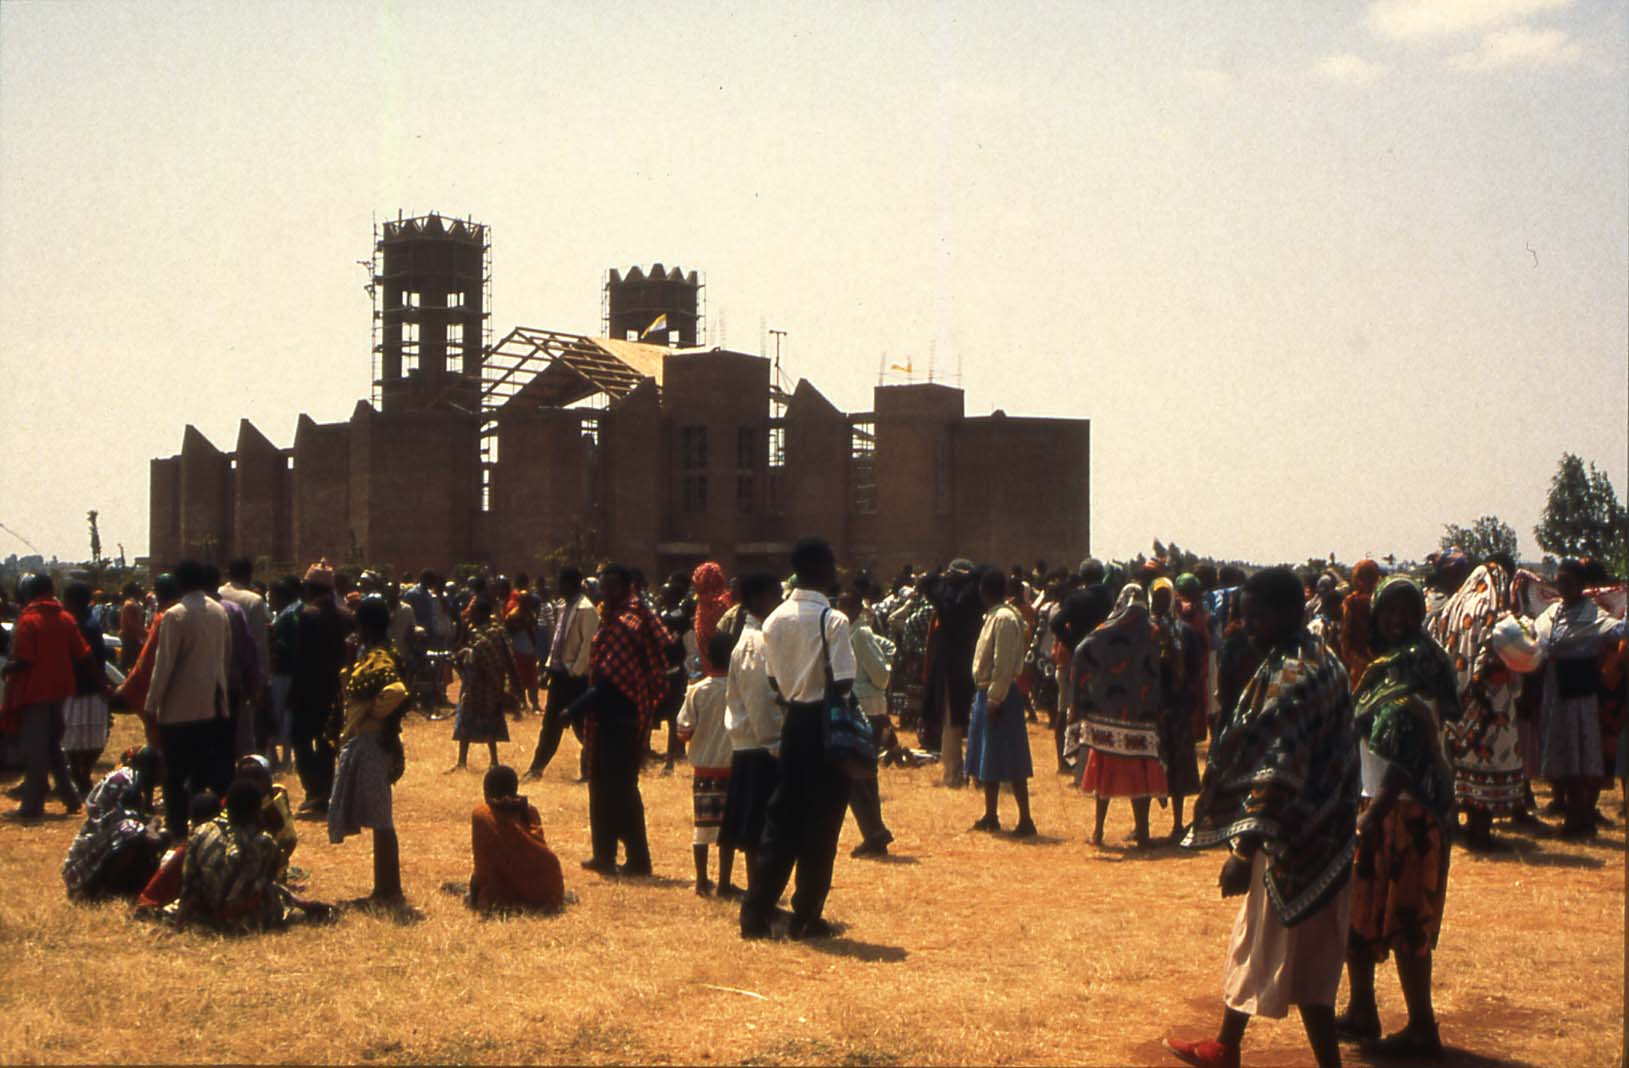 The building of the new cathedral, the 4th largest in Africa